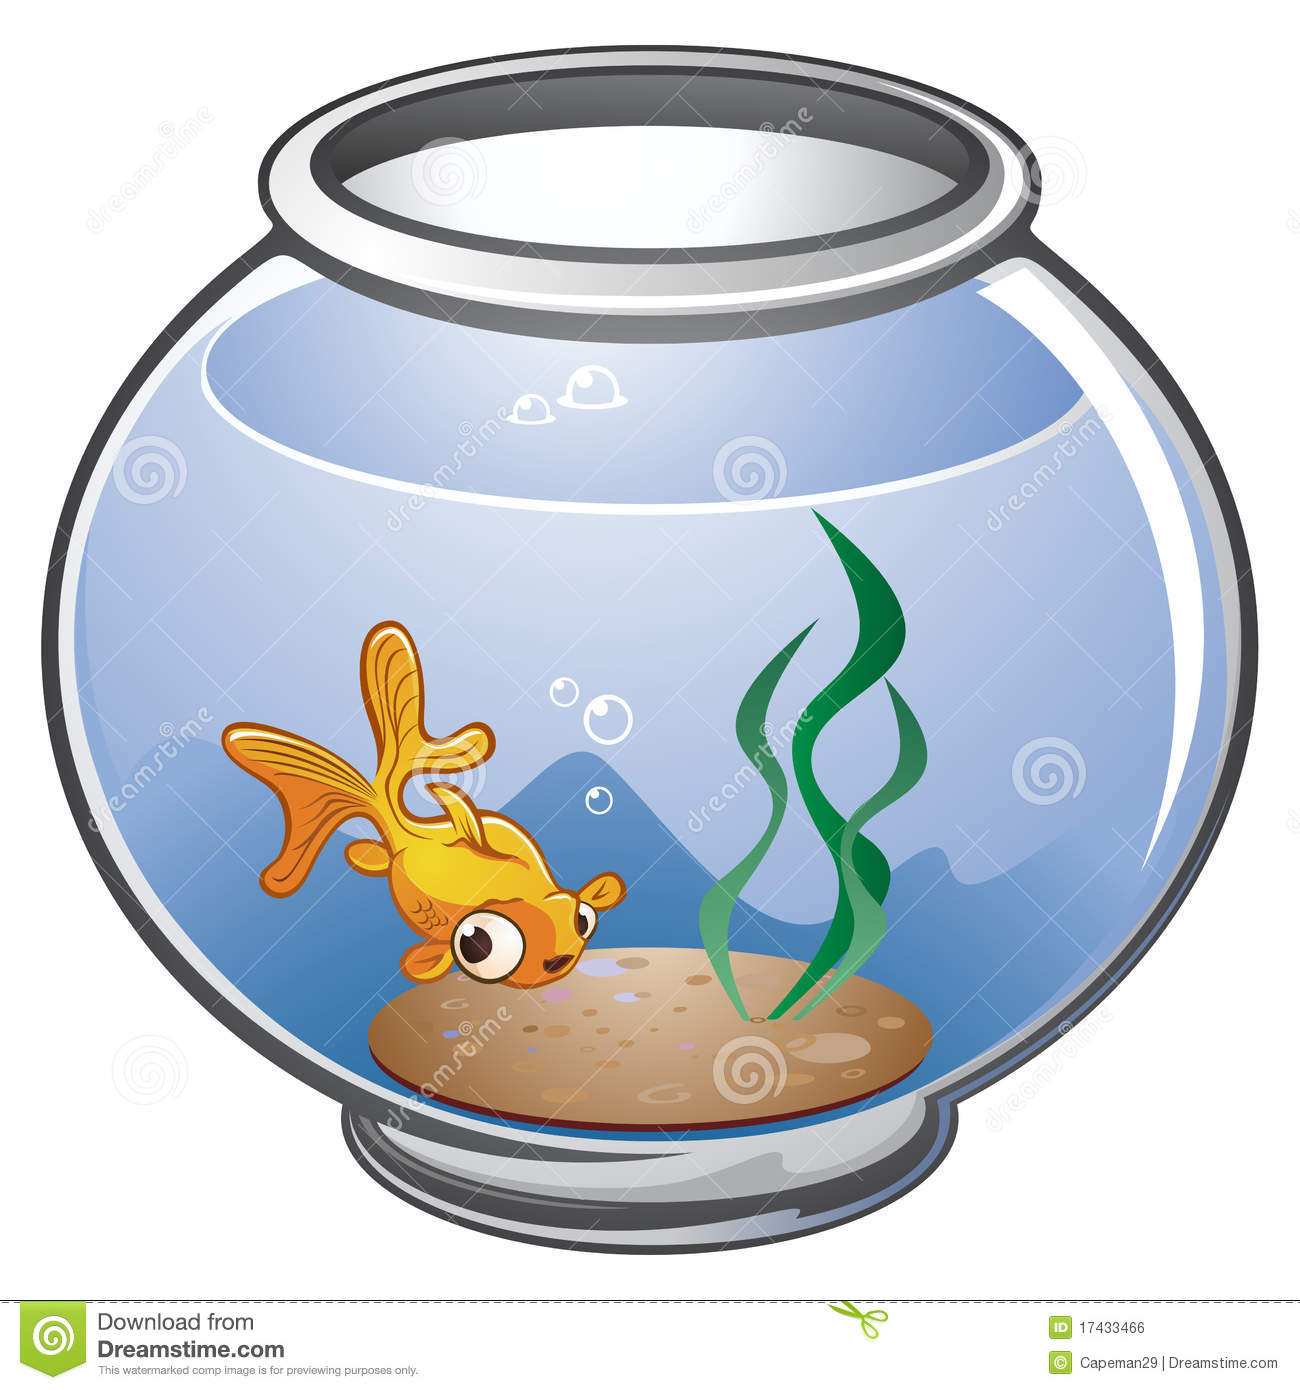 Fish bowl stock vector illustration of cartoon aquarium for How to make a fish bowl